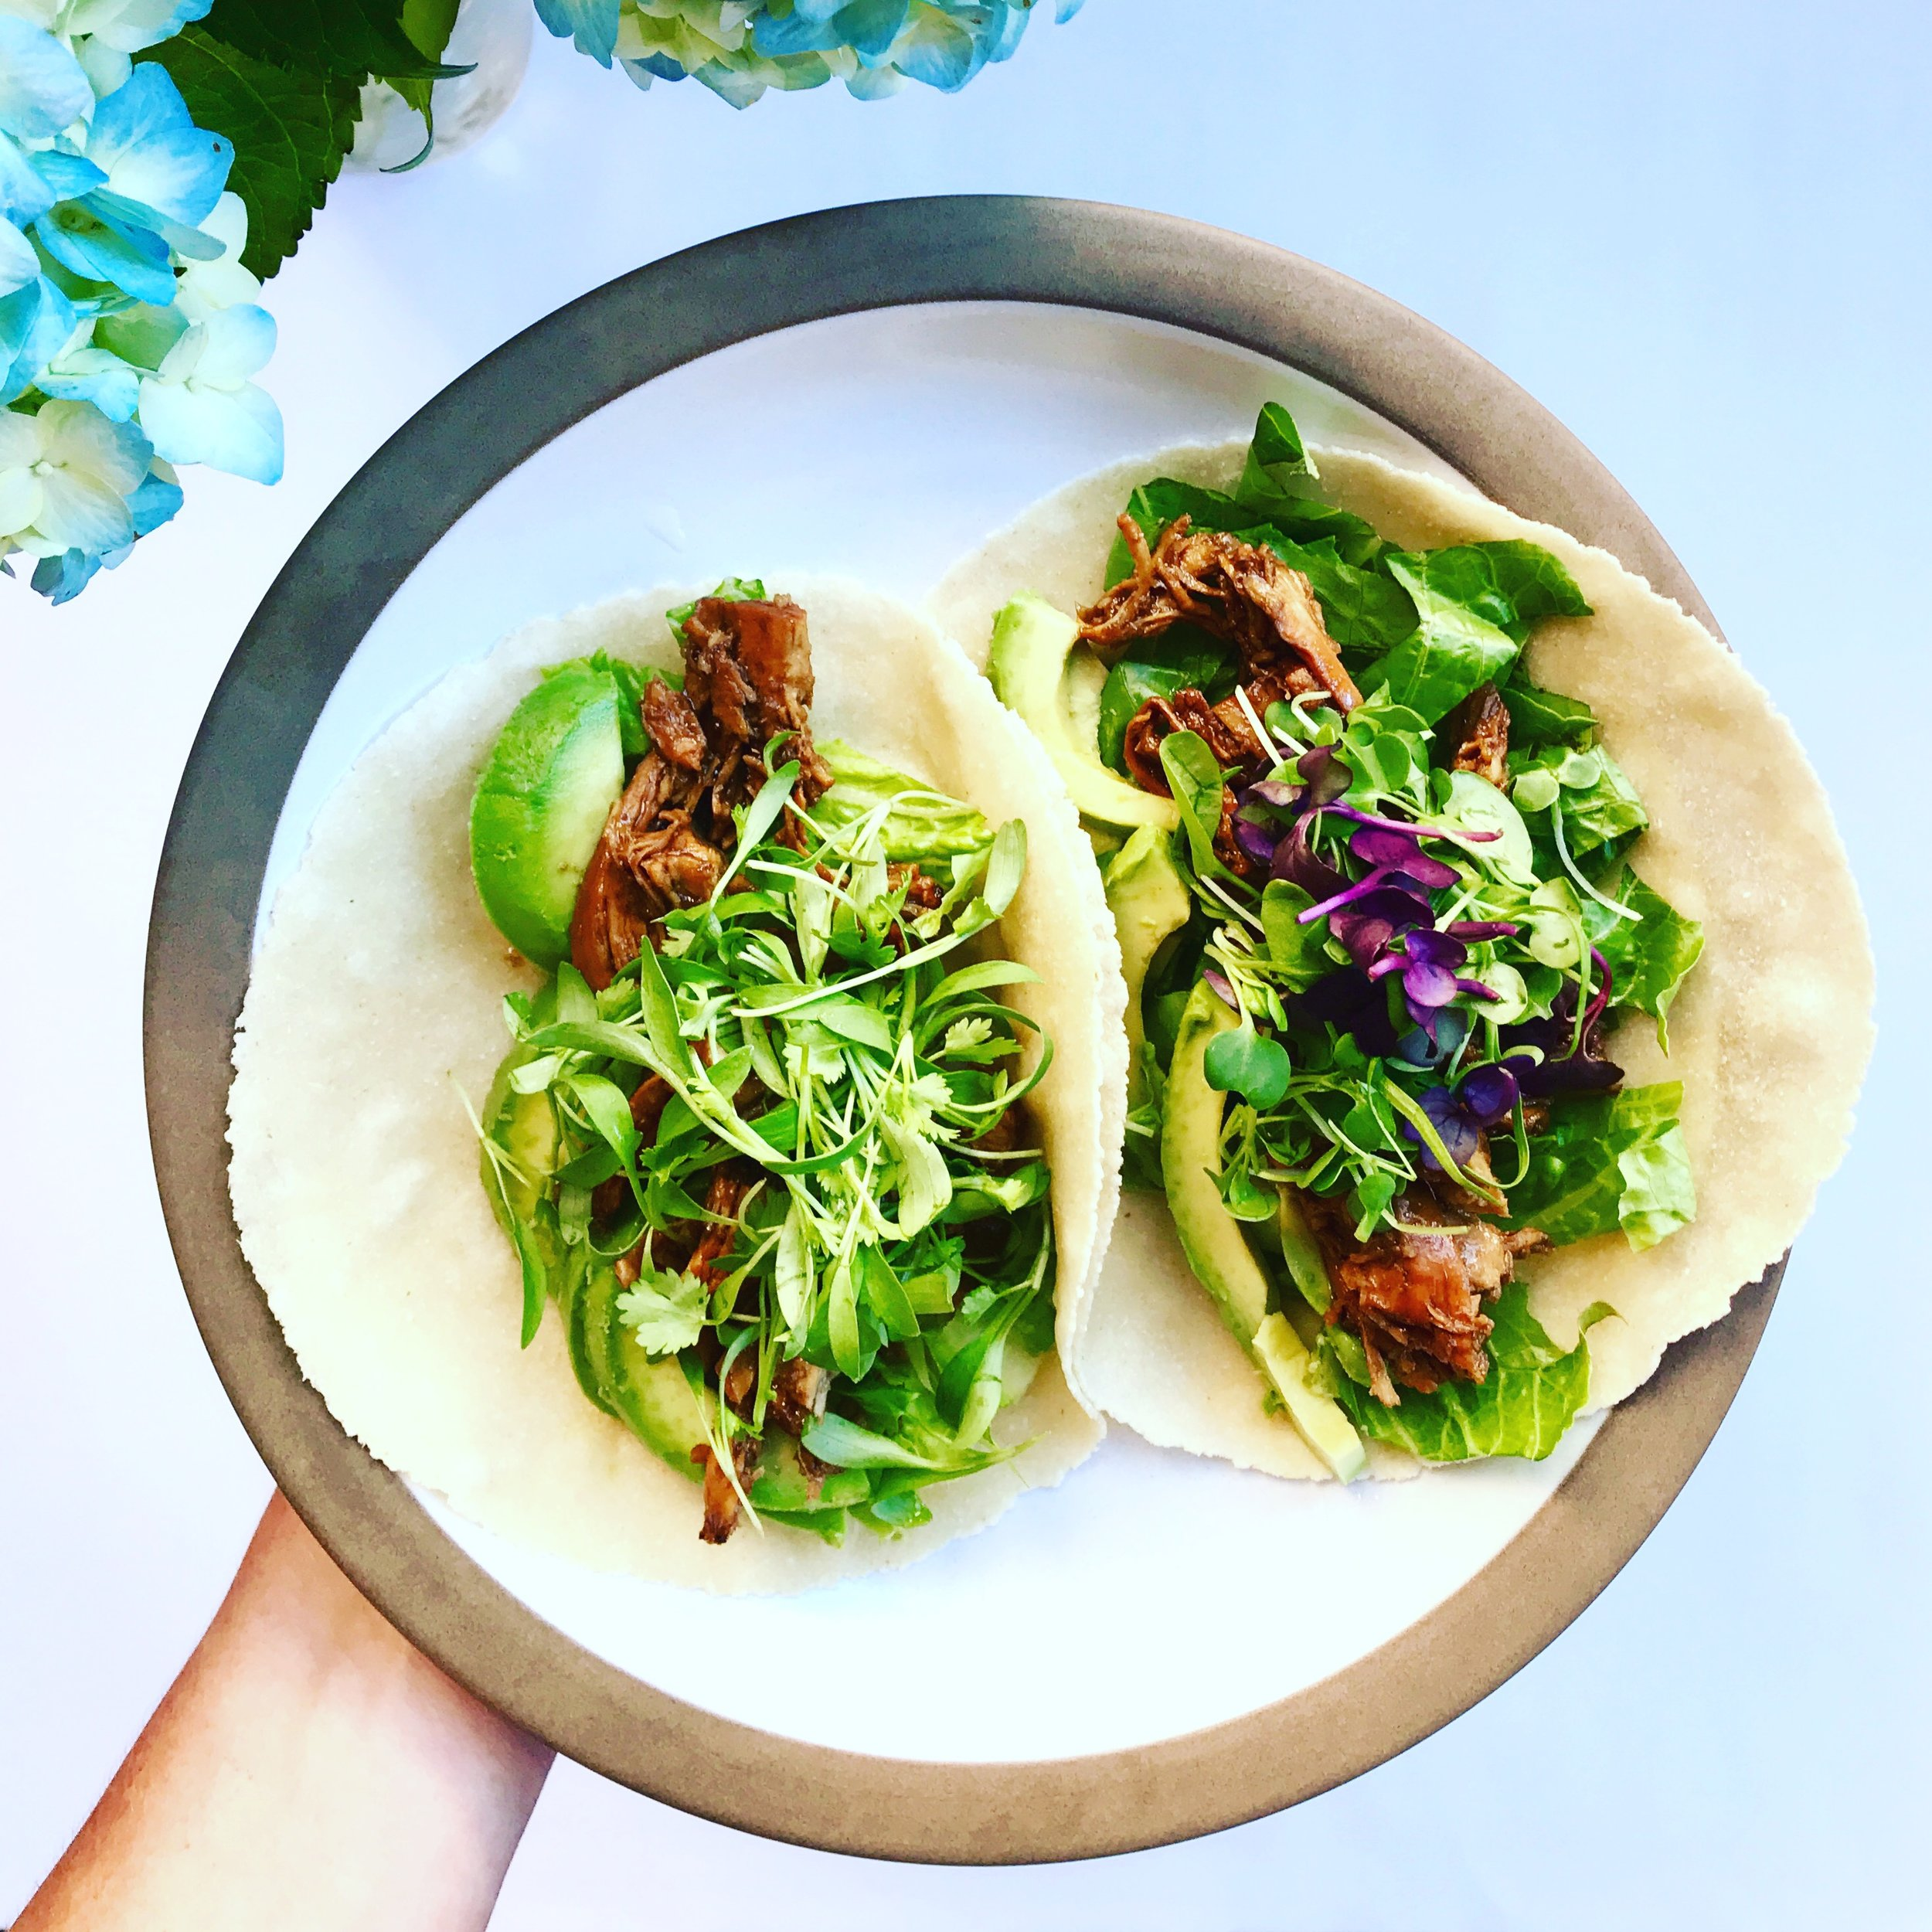 No one is going to make you give up tacos. I promise.